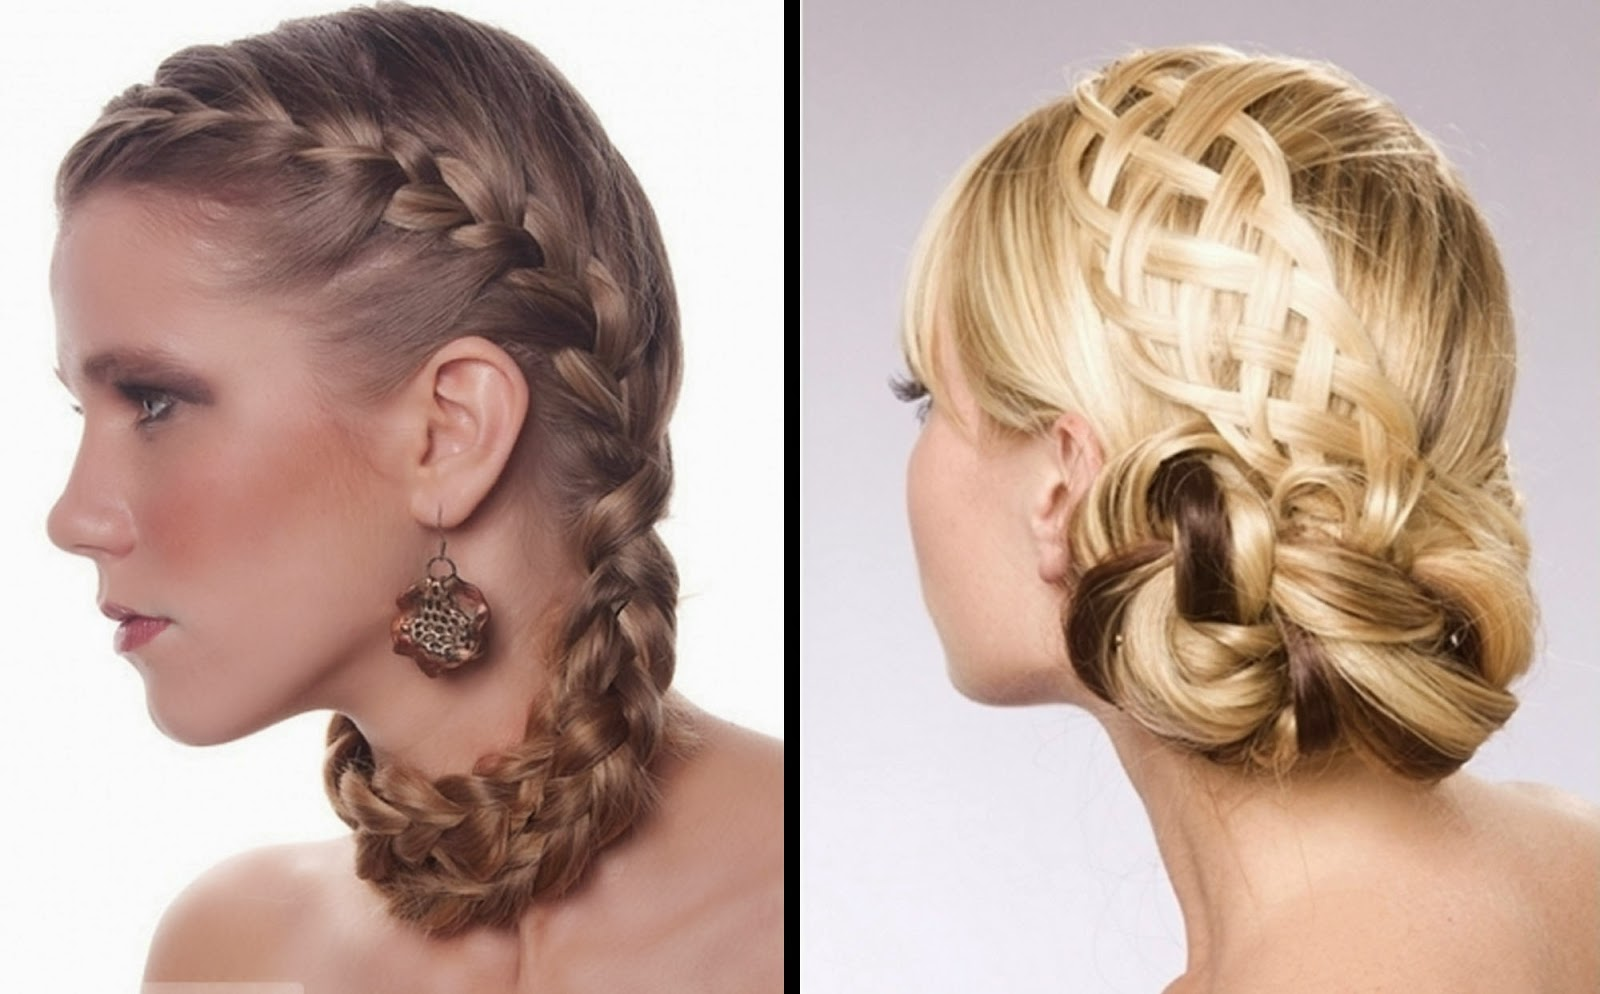 Superb How To Do Prom Hairstyles Updos Hairstyle Pictures Short Hairstyles For Black Women Fulllsitofus